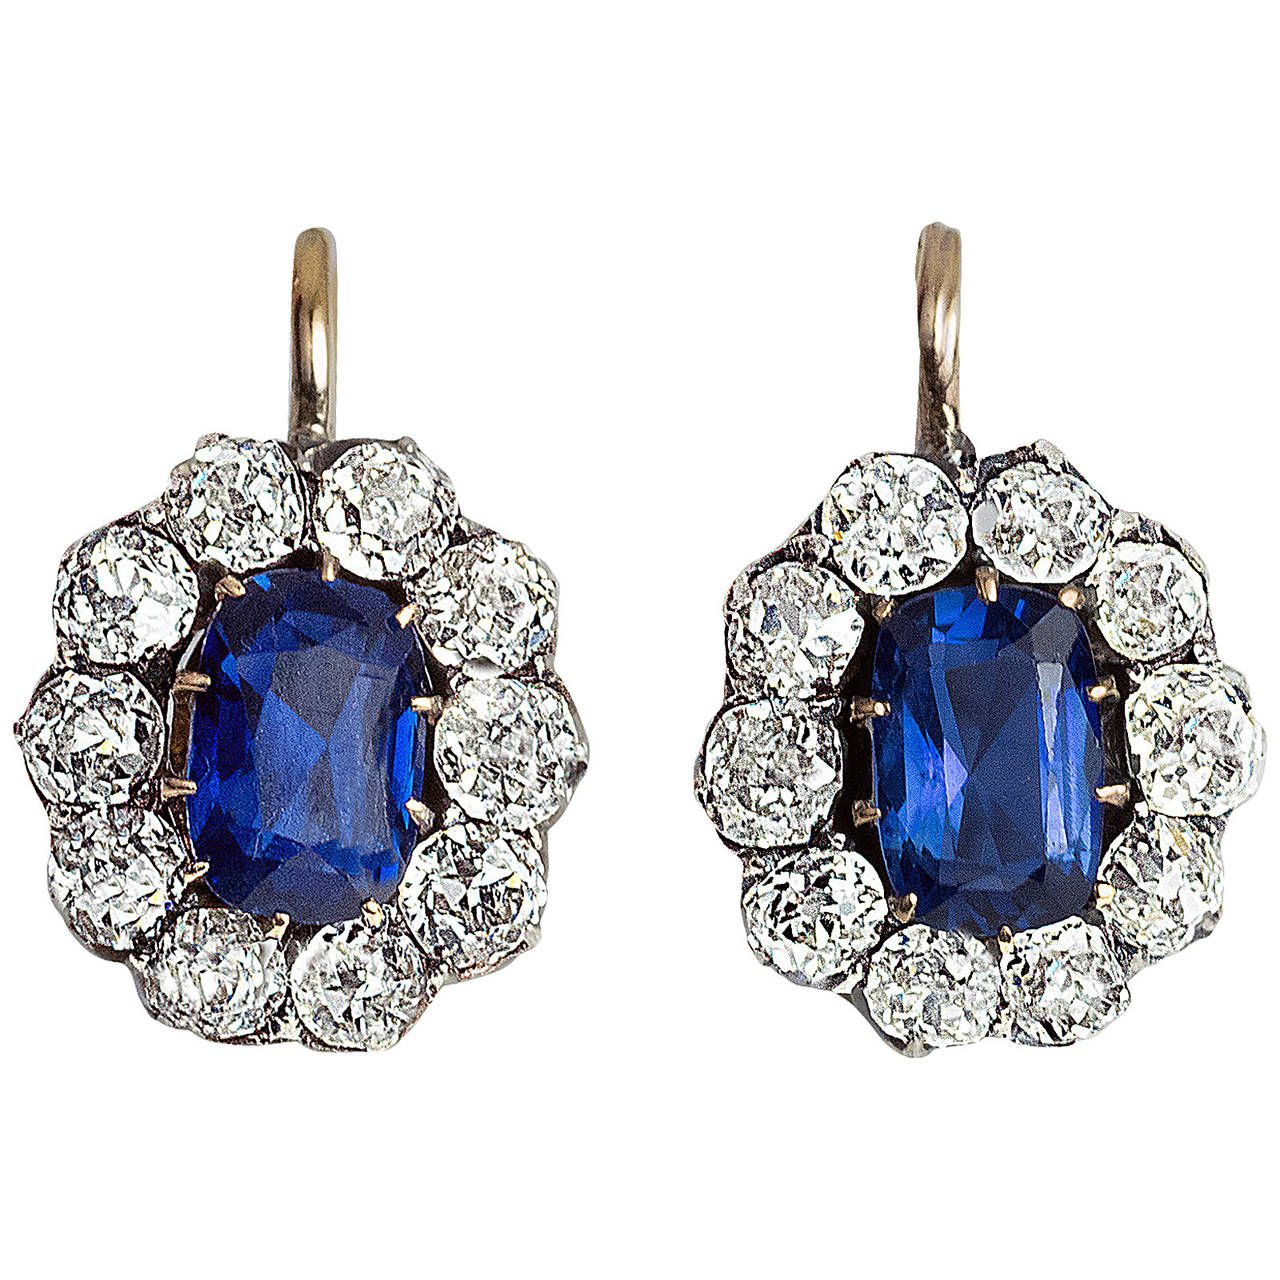 Antique Russian Sapphire Diamond gold Cluster Earrings | From a unique collection of vintage dangle earrings at https://www.1stdibs.com/jewelry/earrings/dangle-earrings/